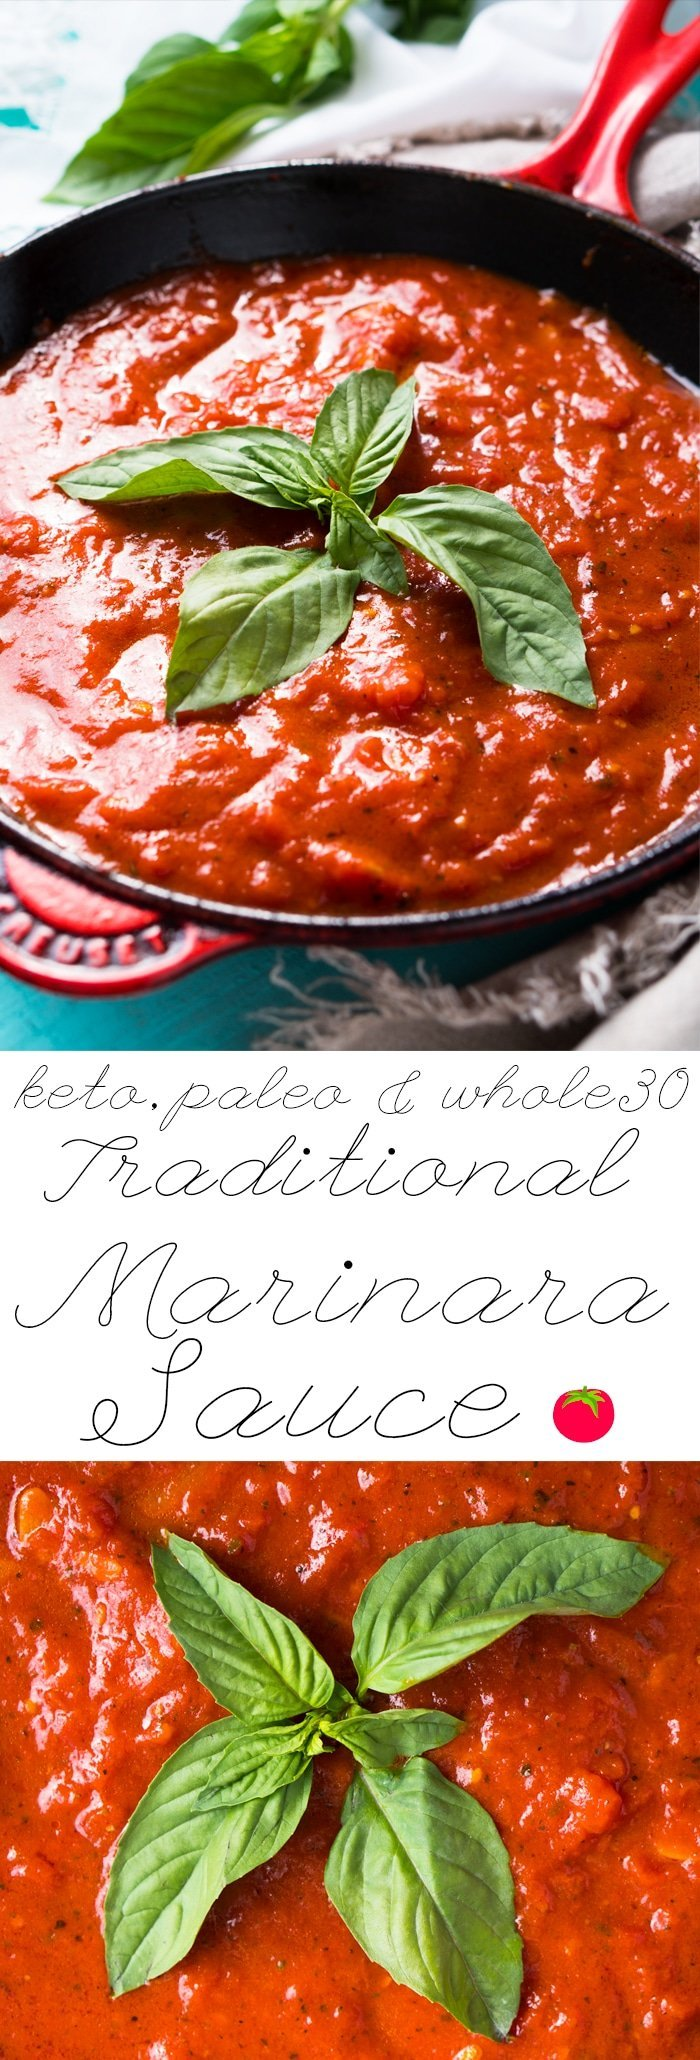 Paleo, Whole30 & Keto Marinara Sauce 🍅 #ketomarinara #marinarasauce #whole30